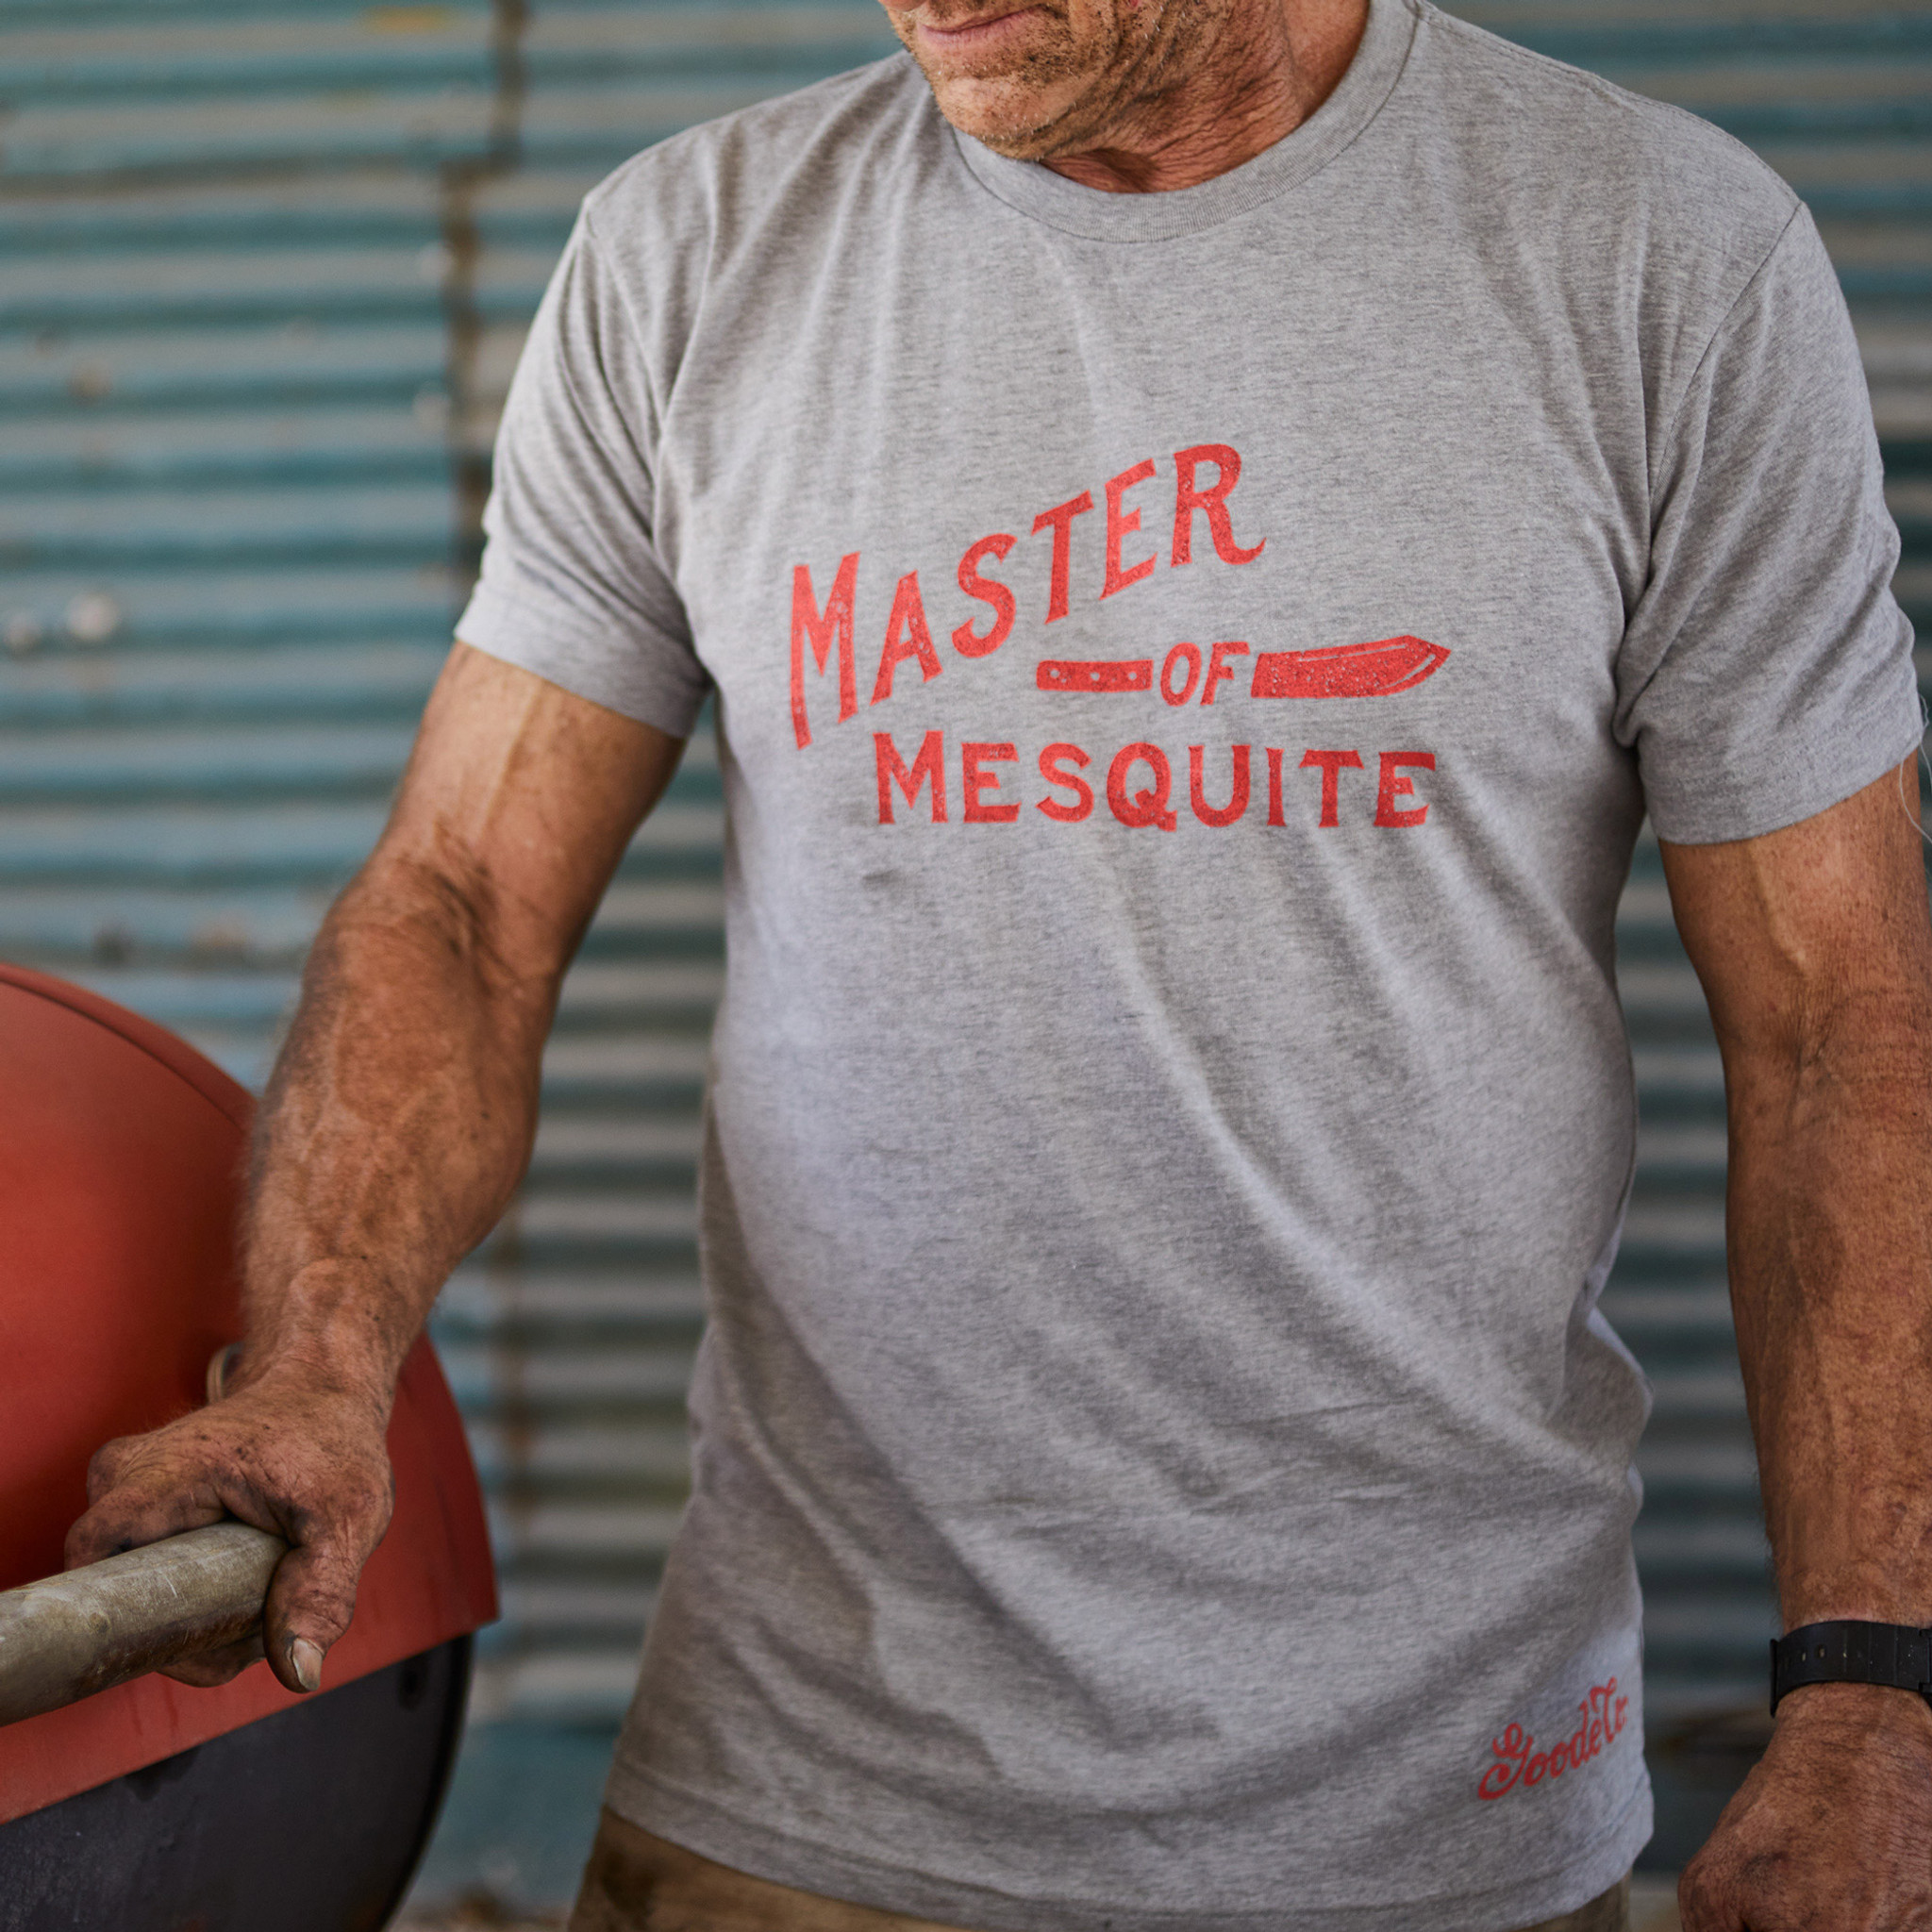 """Proud Texan wearing Goode Co's light grey cotton t-shirt that says """"Master of Mesquite"""" in red font."""